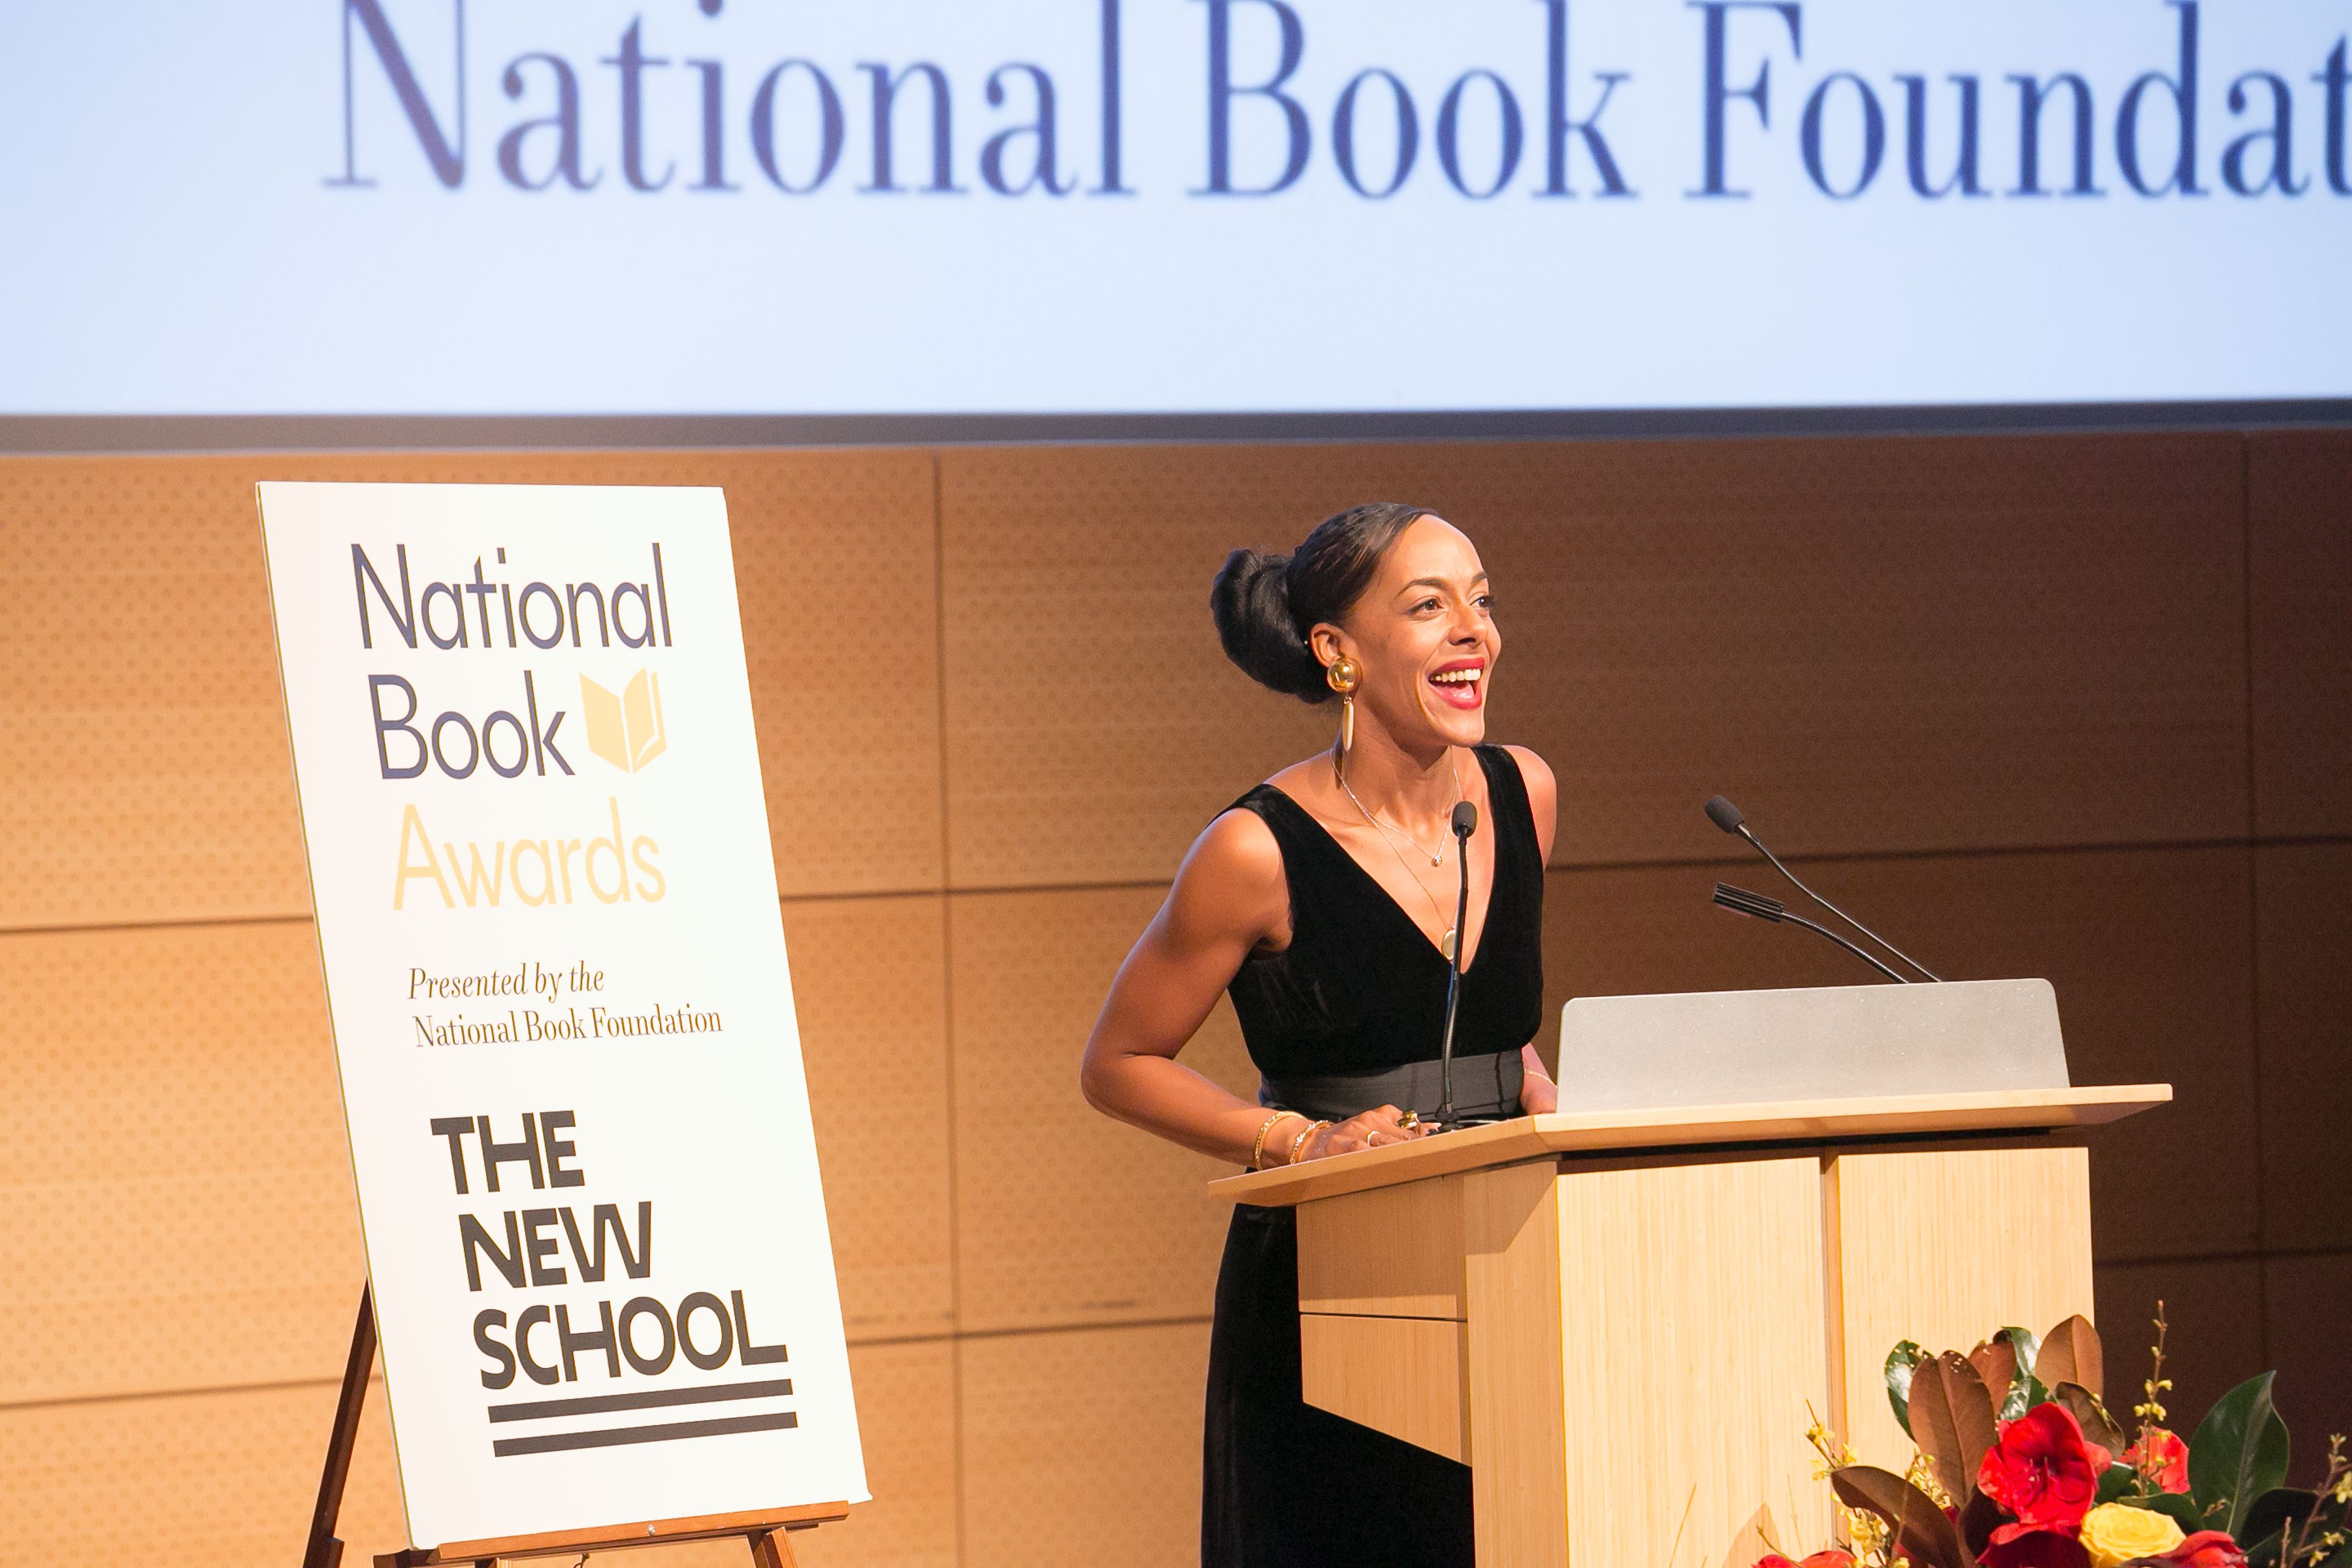 How National Book Foundation Director Lisa Lucas is Making More People Fall in Love with Books